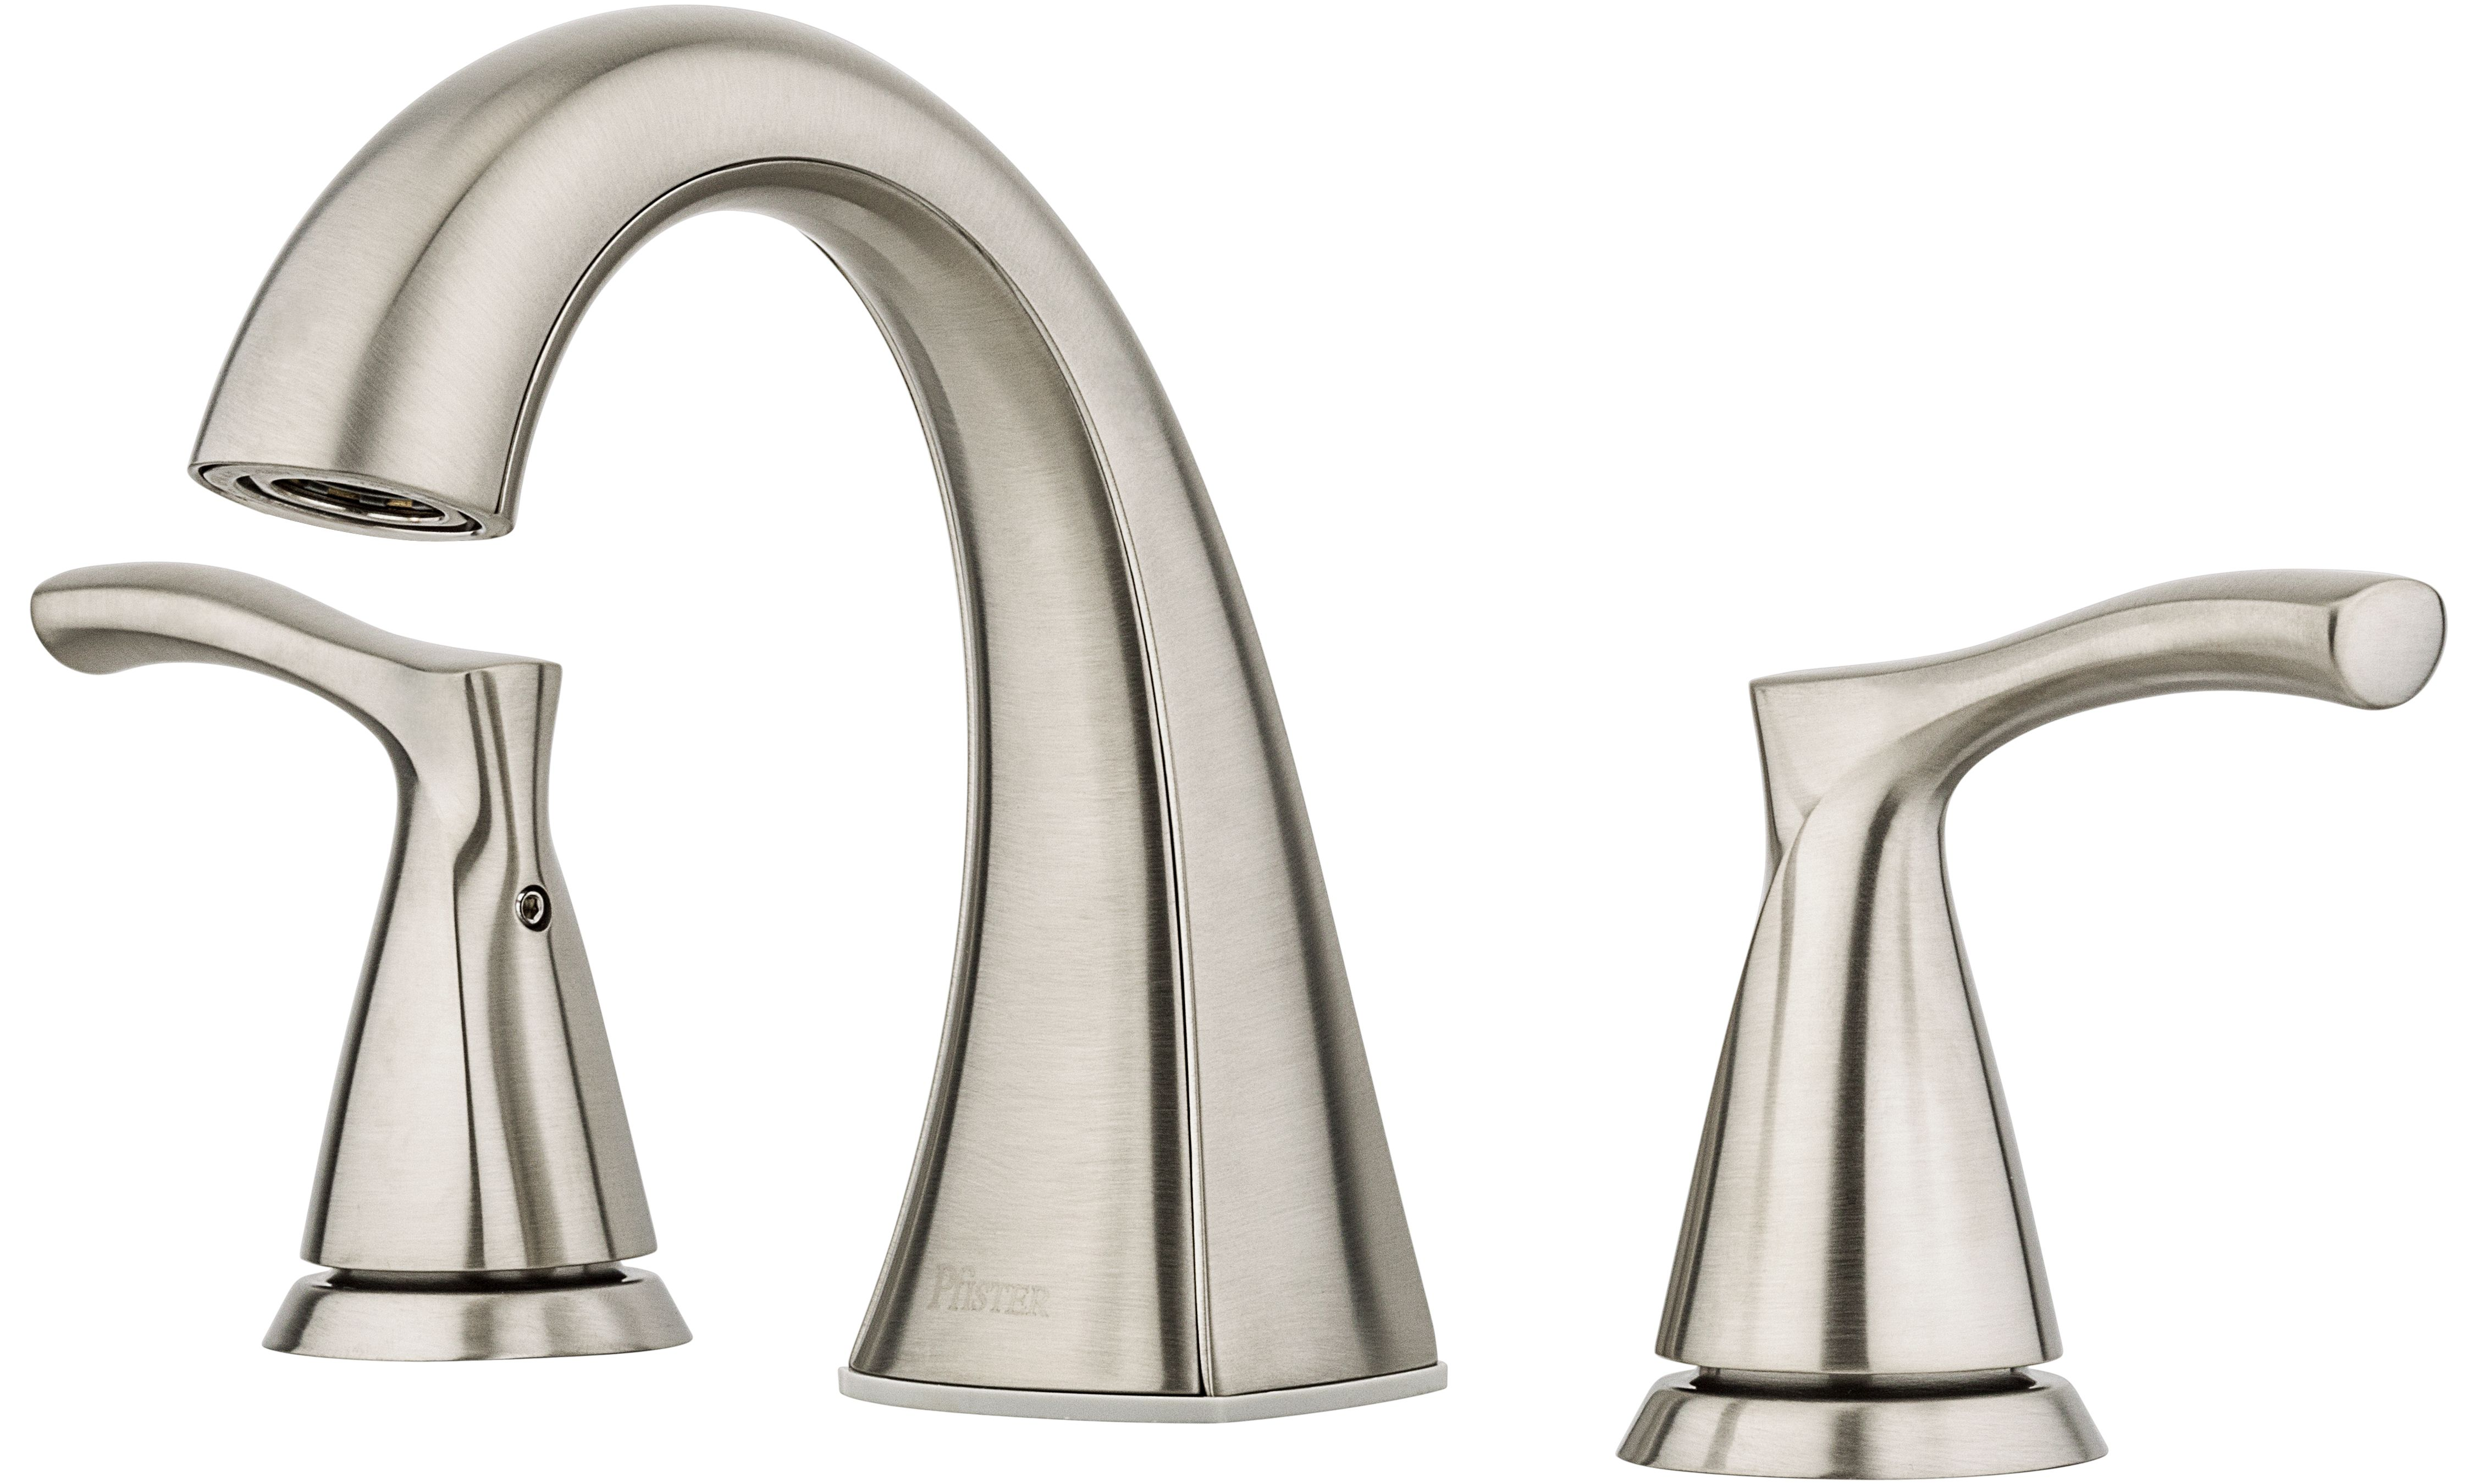 Masey 8 Centre Lavatory Brushed Nickel Faucet